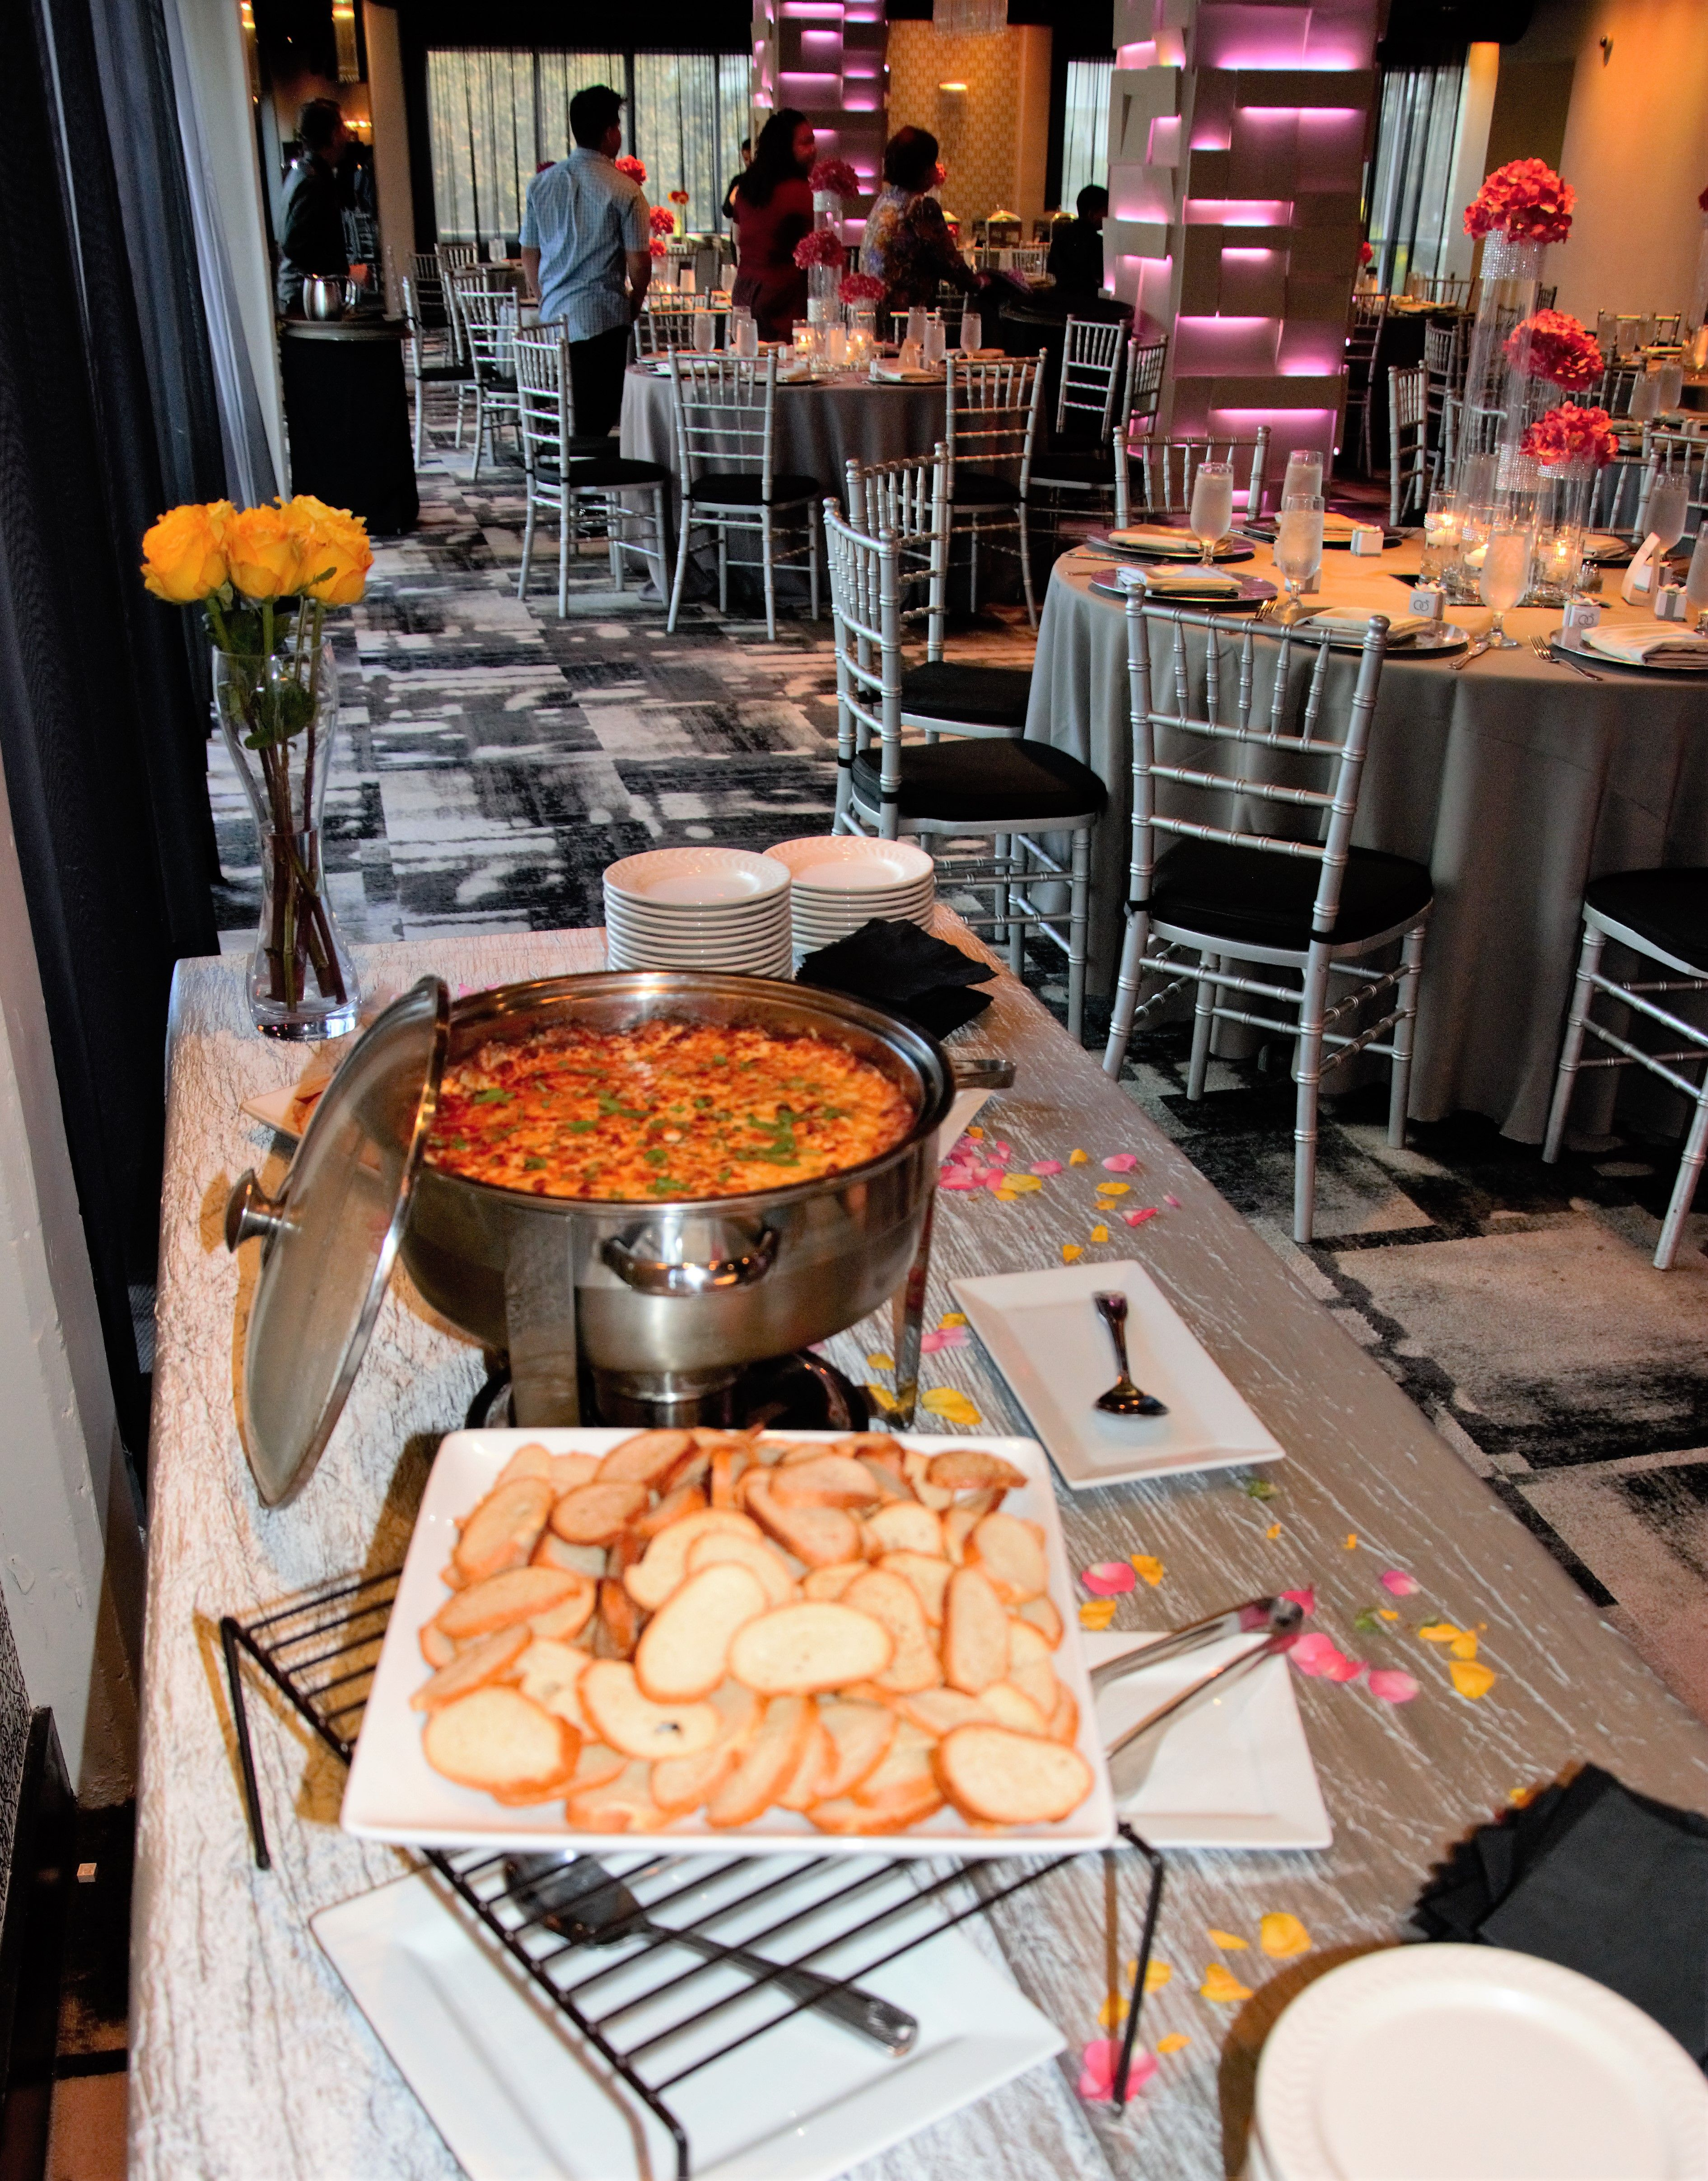 Wedding And Reception Of Chiara Lazarus Chris Hunter September 17 2017 At The Mezz Downtown Orlando Plus Catering Orla With Images Orlando Wedding Catering Orlando